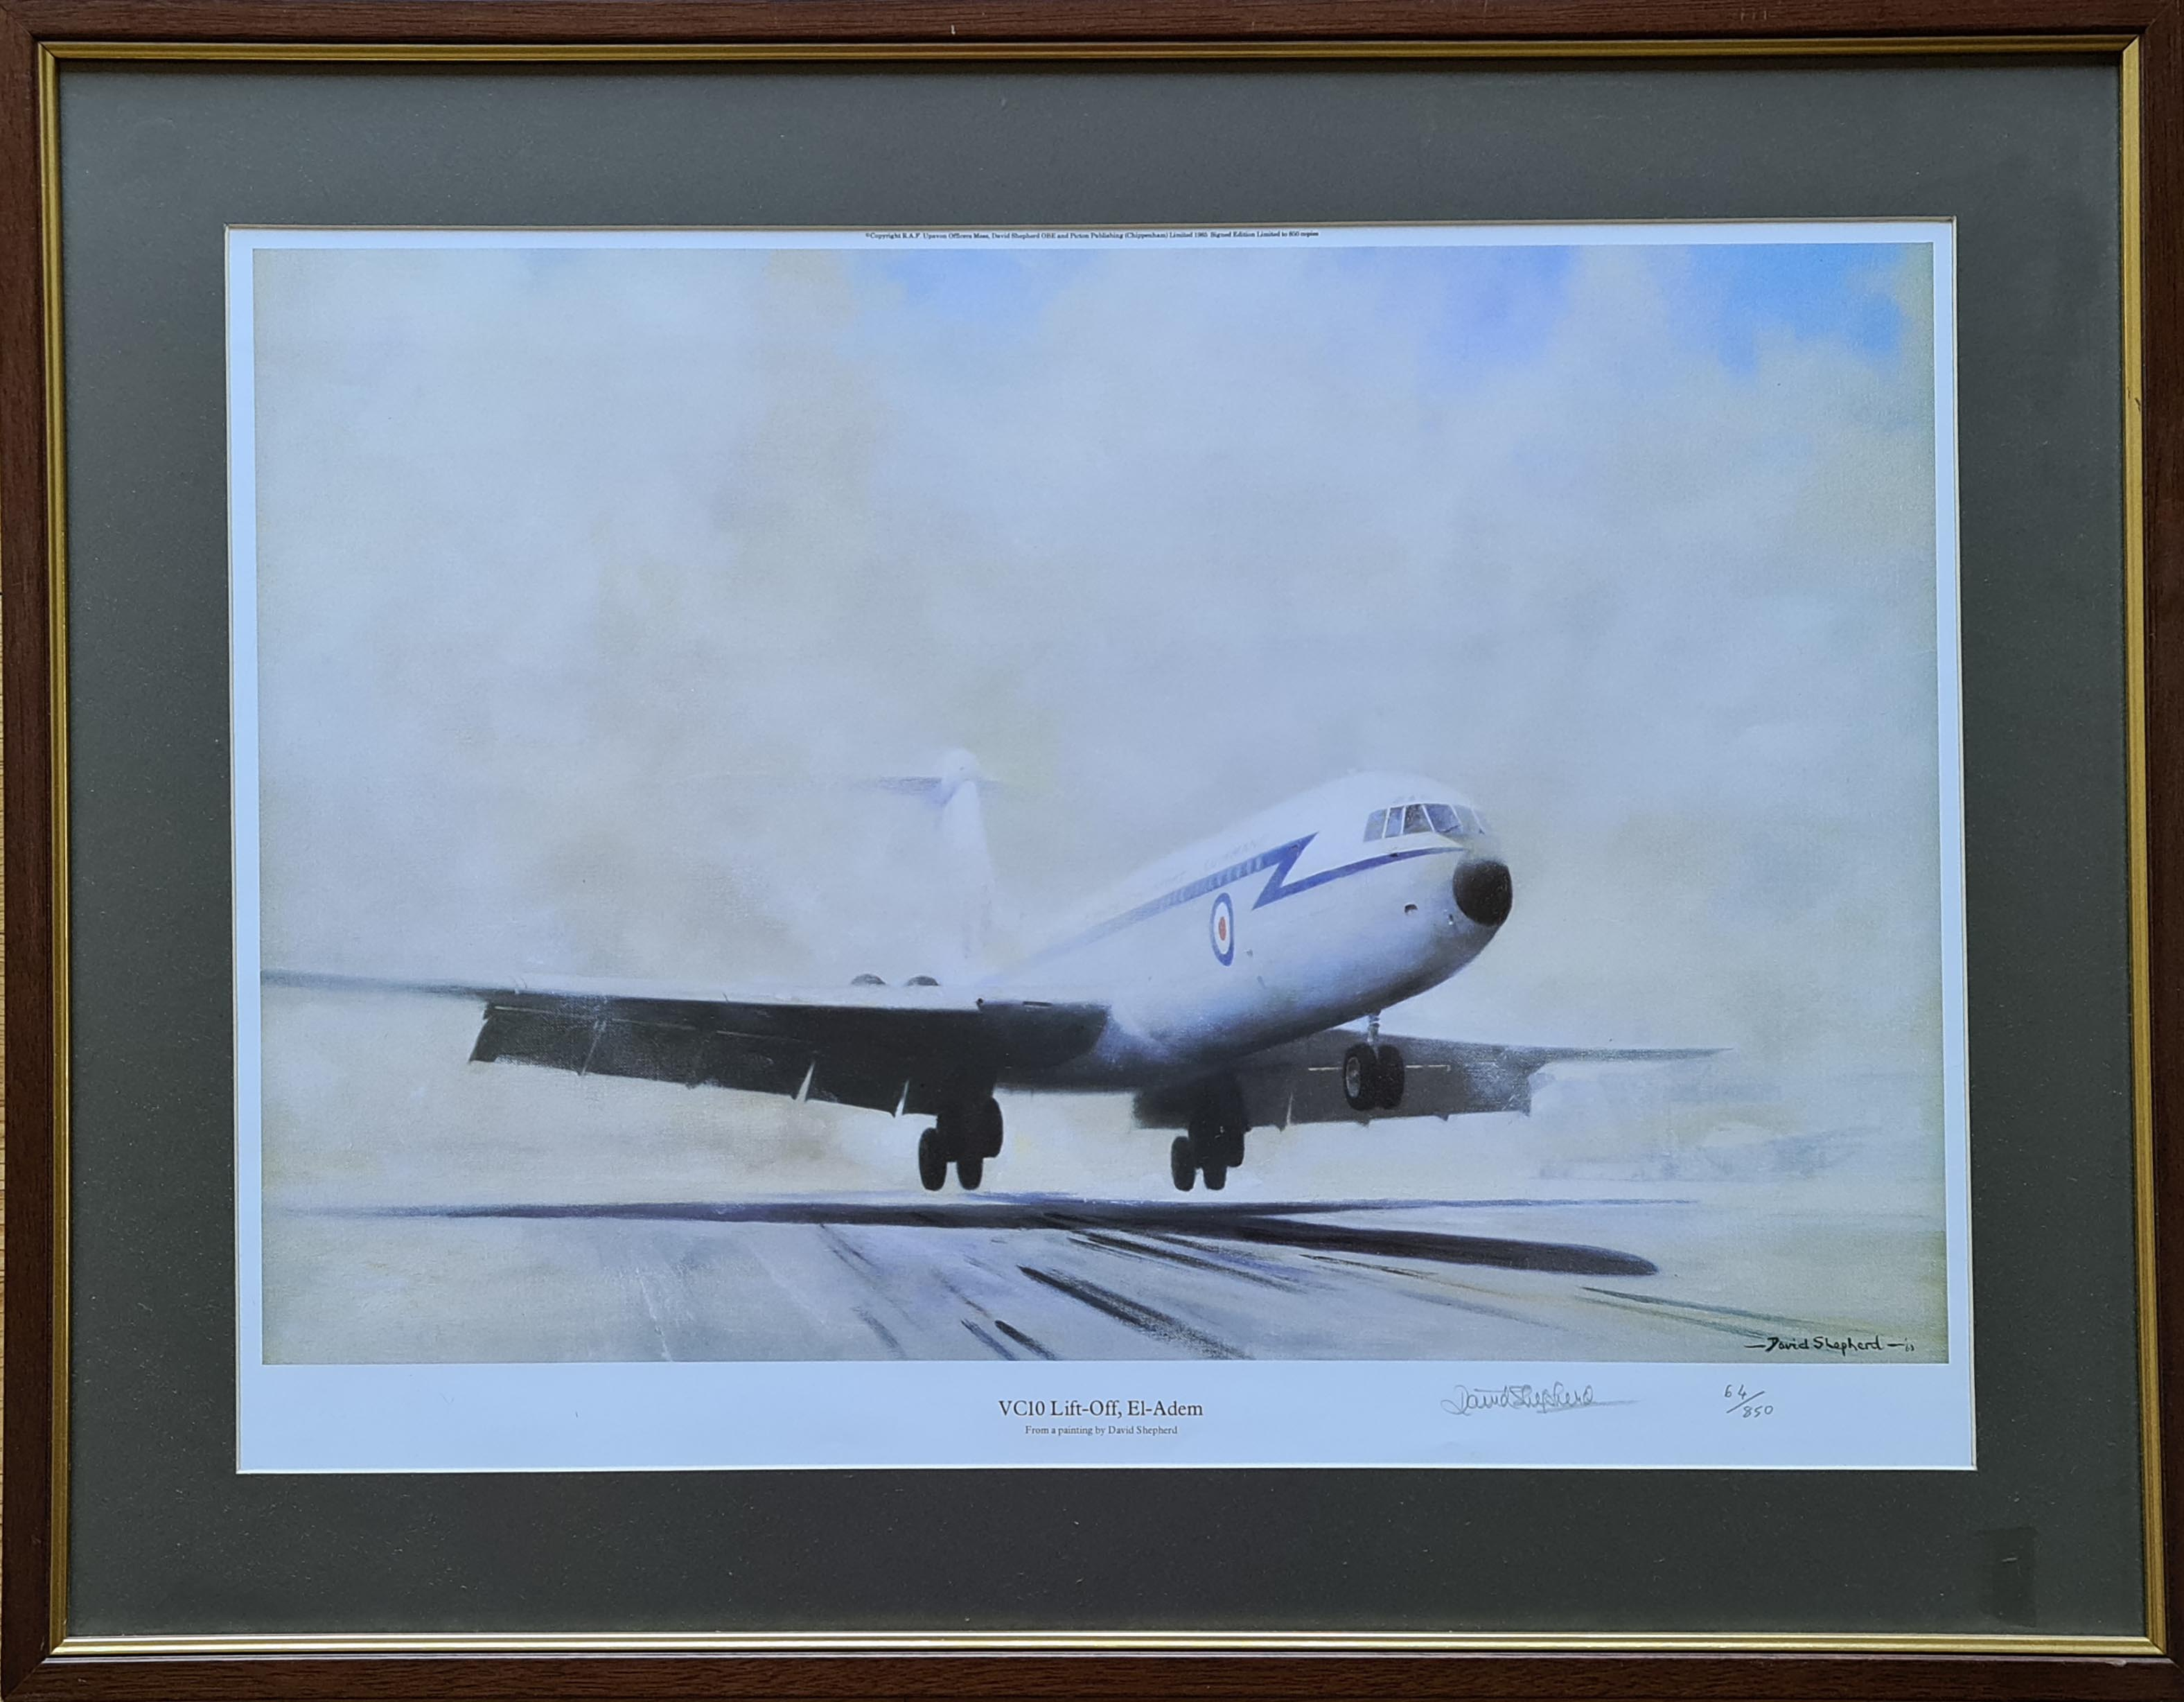 shepherd, VC10, El-Adem, aviation, framed